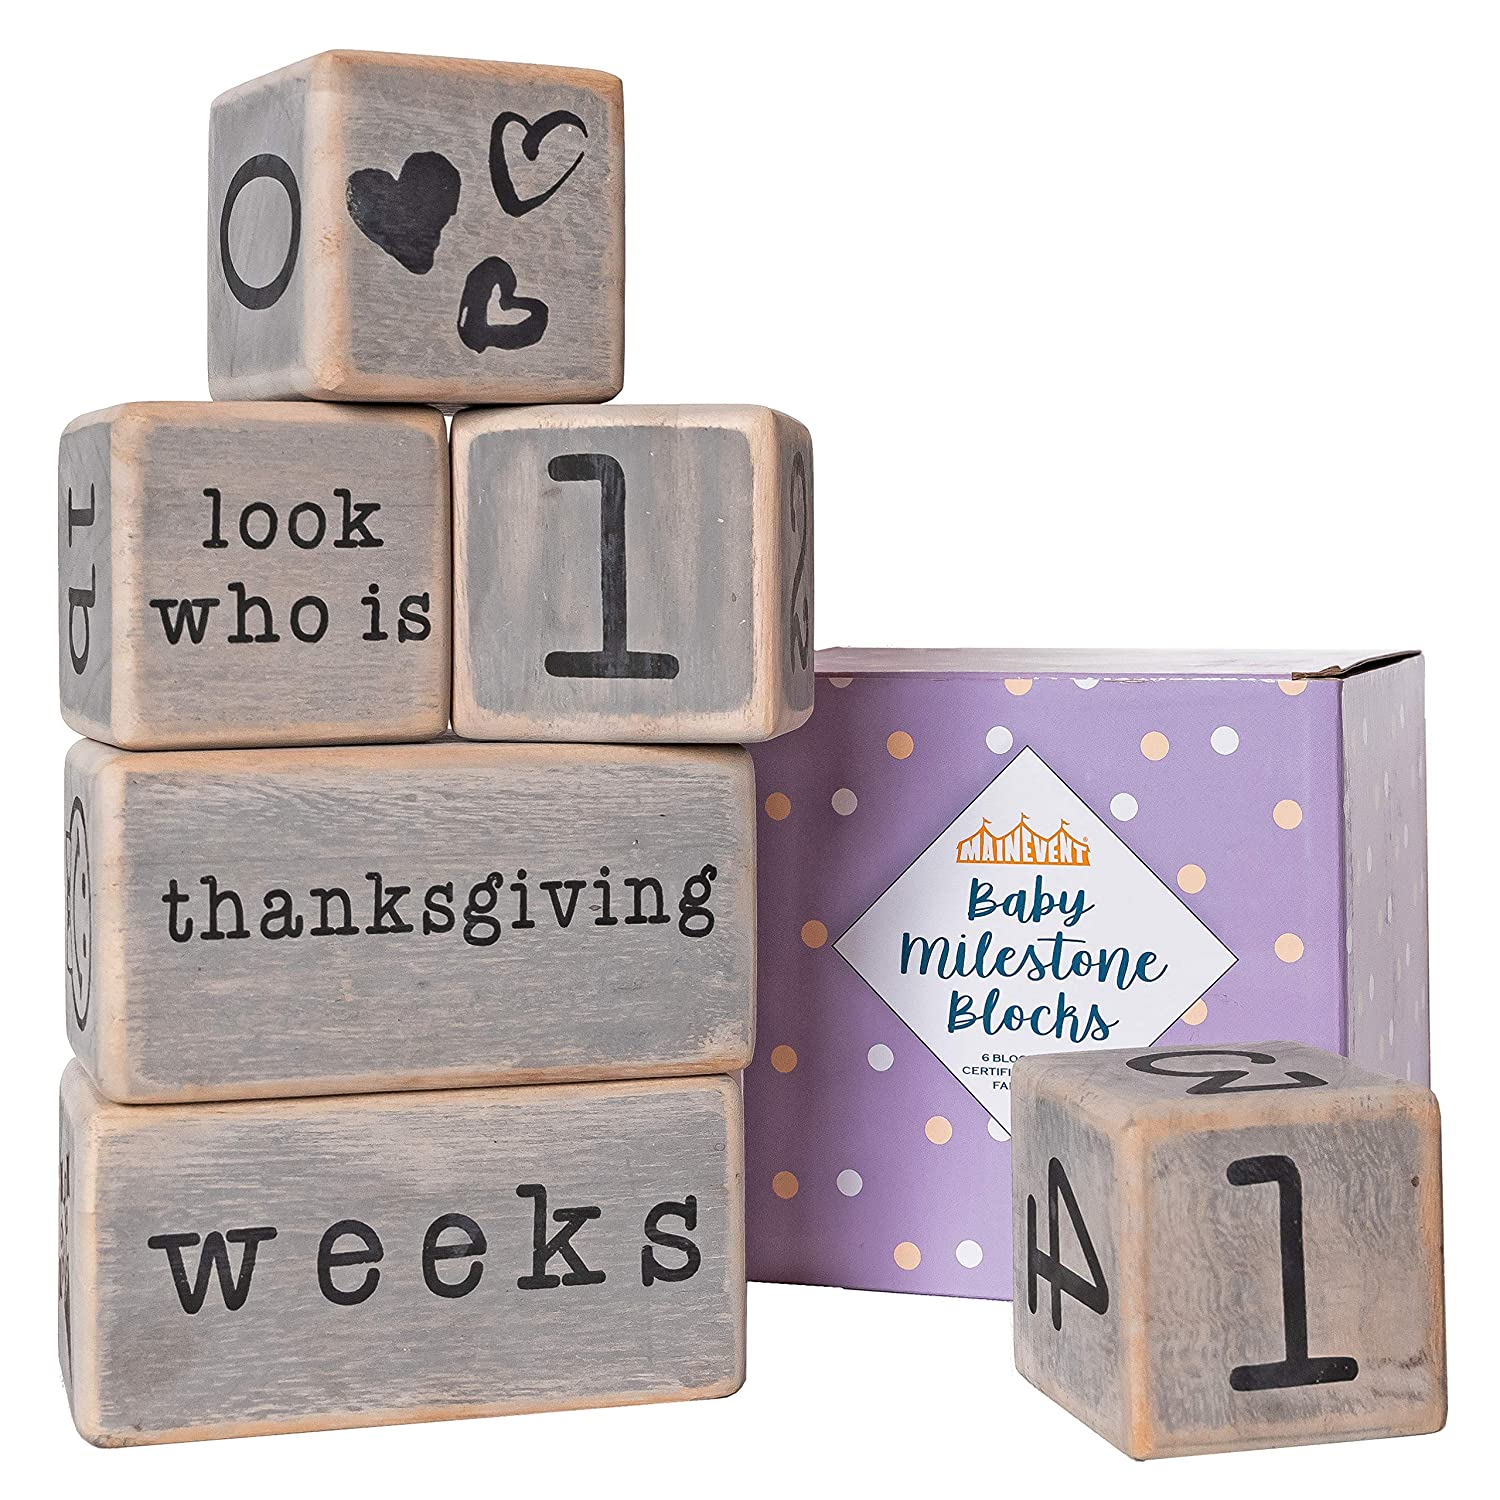 Baby Monthly Milestone Blocks - 6 Blocks, The Most Complete Set, Baby Photography Props for Social Media, Rustic Baby Nursery Decor (Gray)